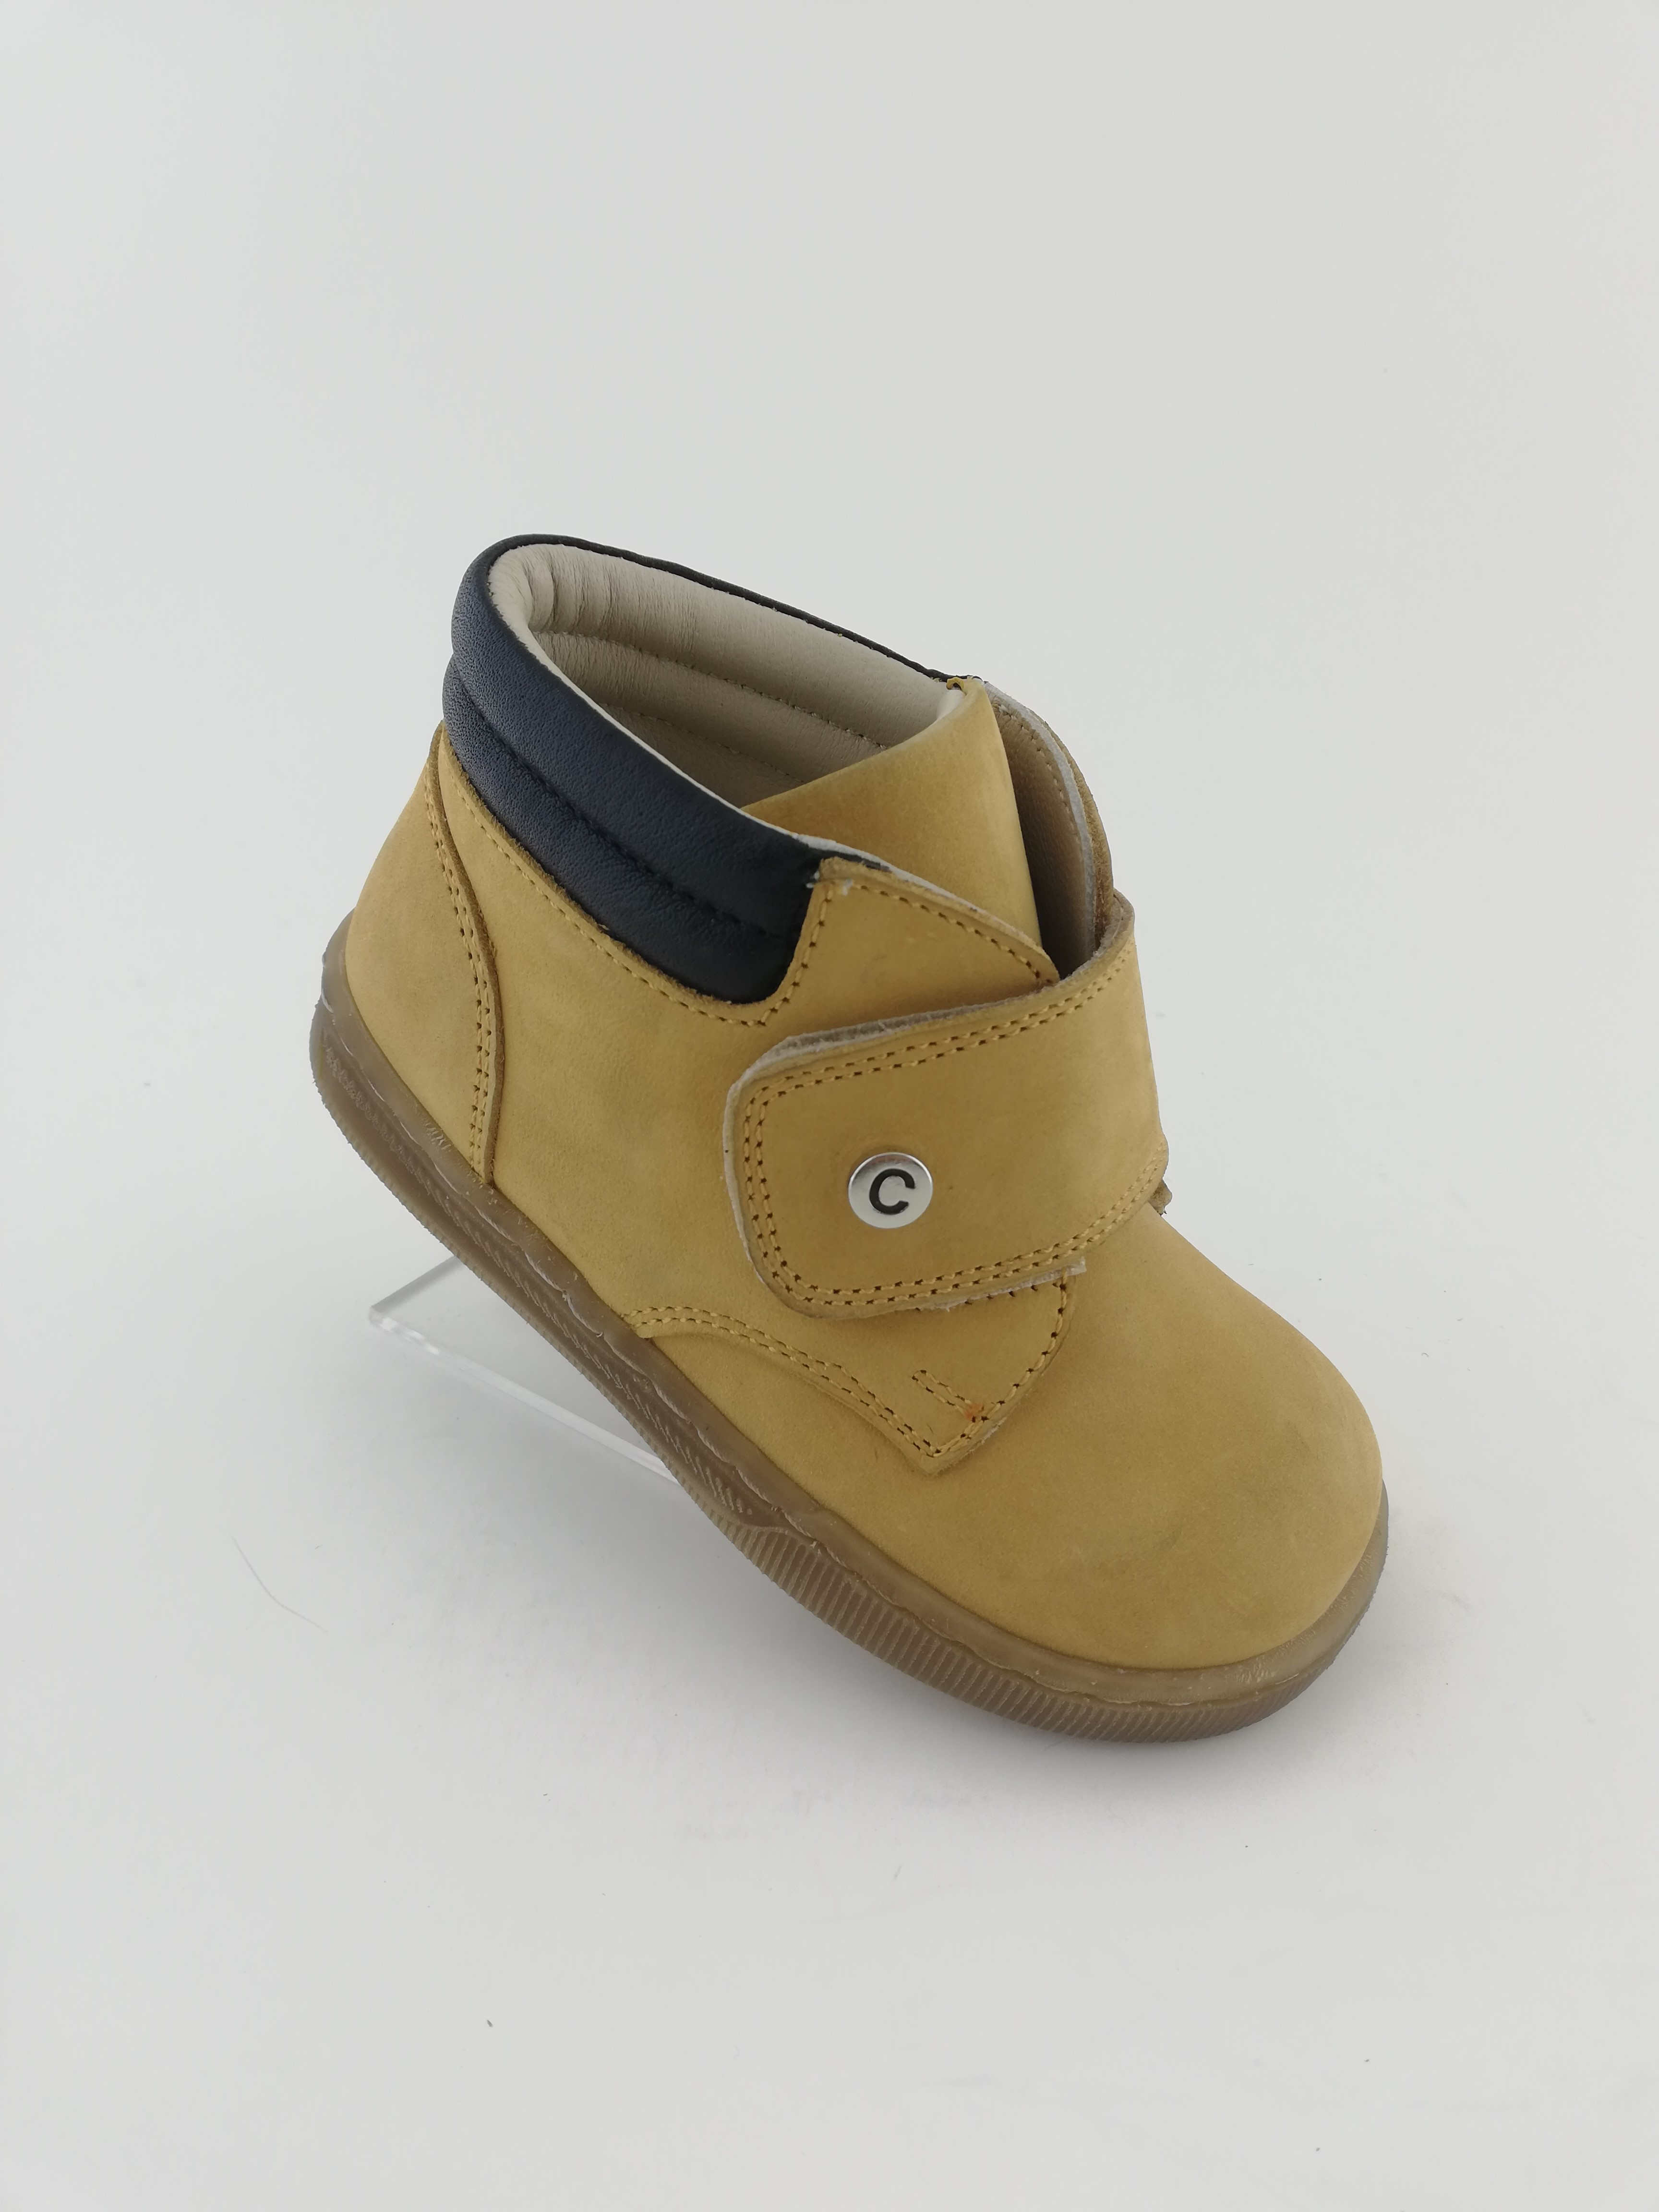 012P Leather Baby Boy Boots